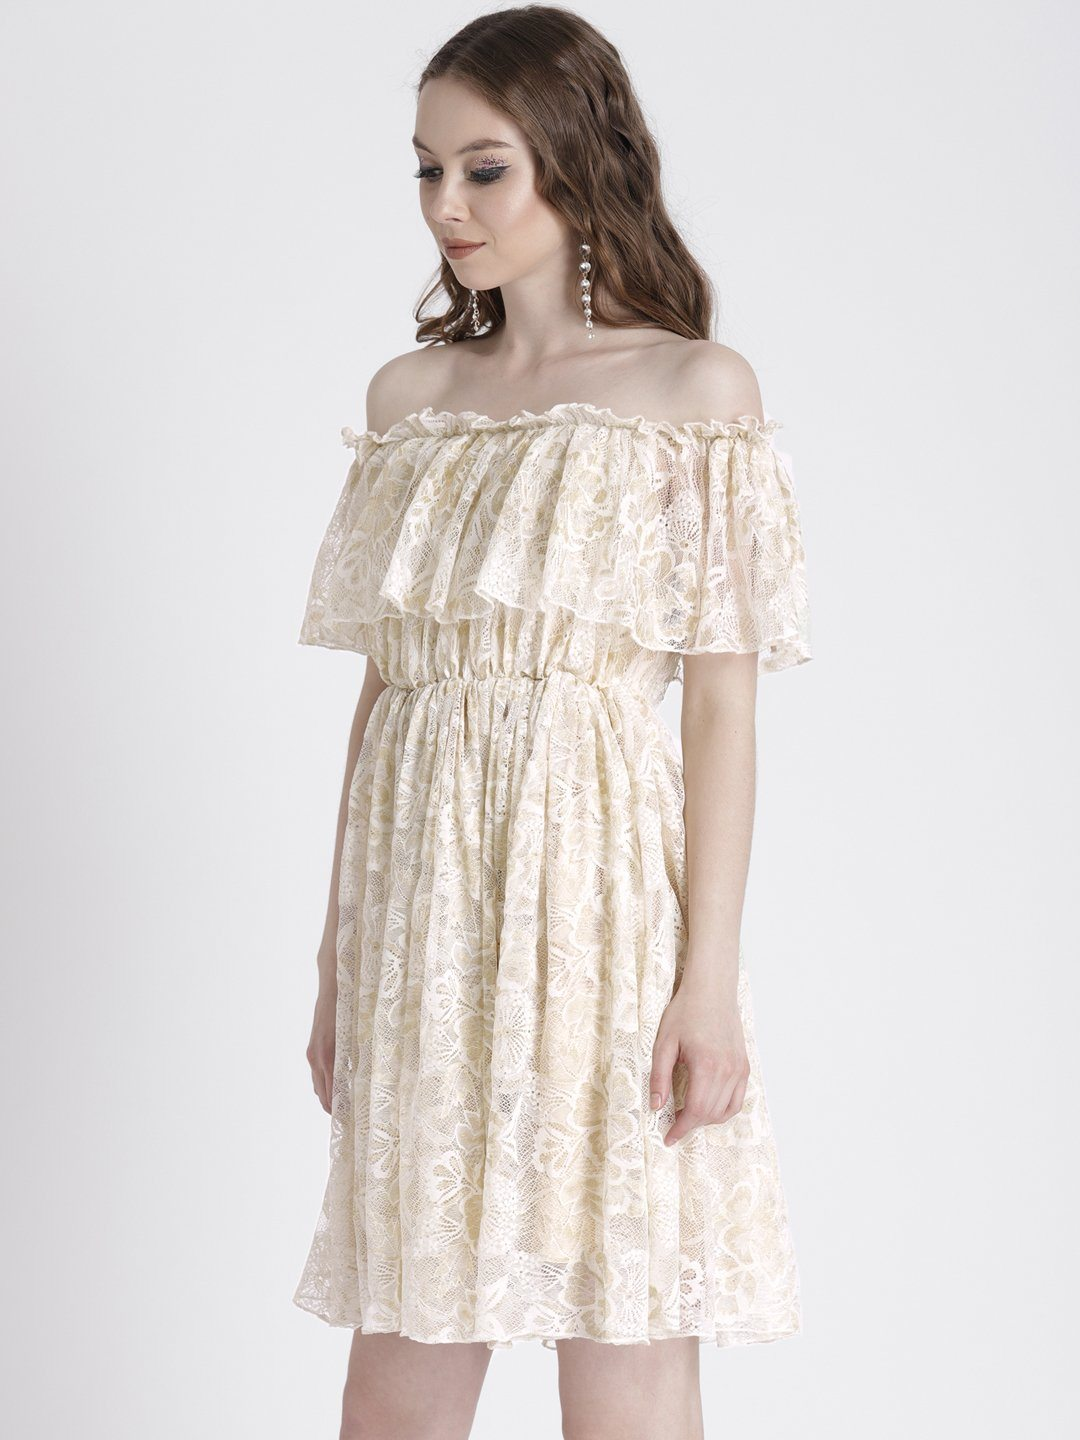 CREAM OFF SHOULDER DRESS IN LACE